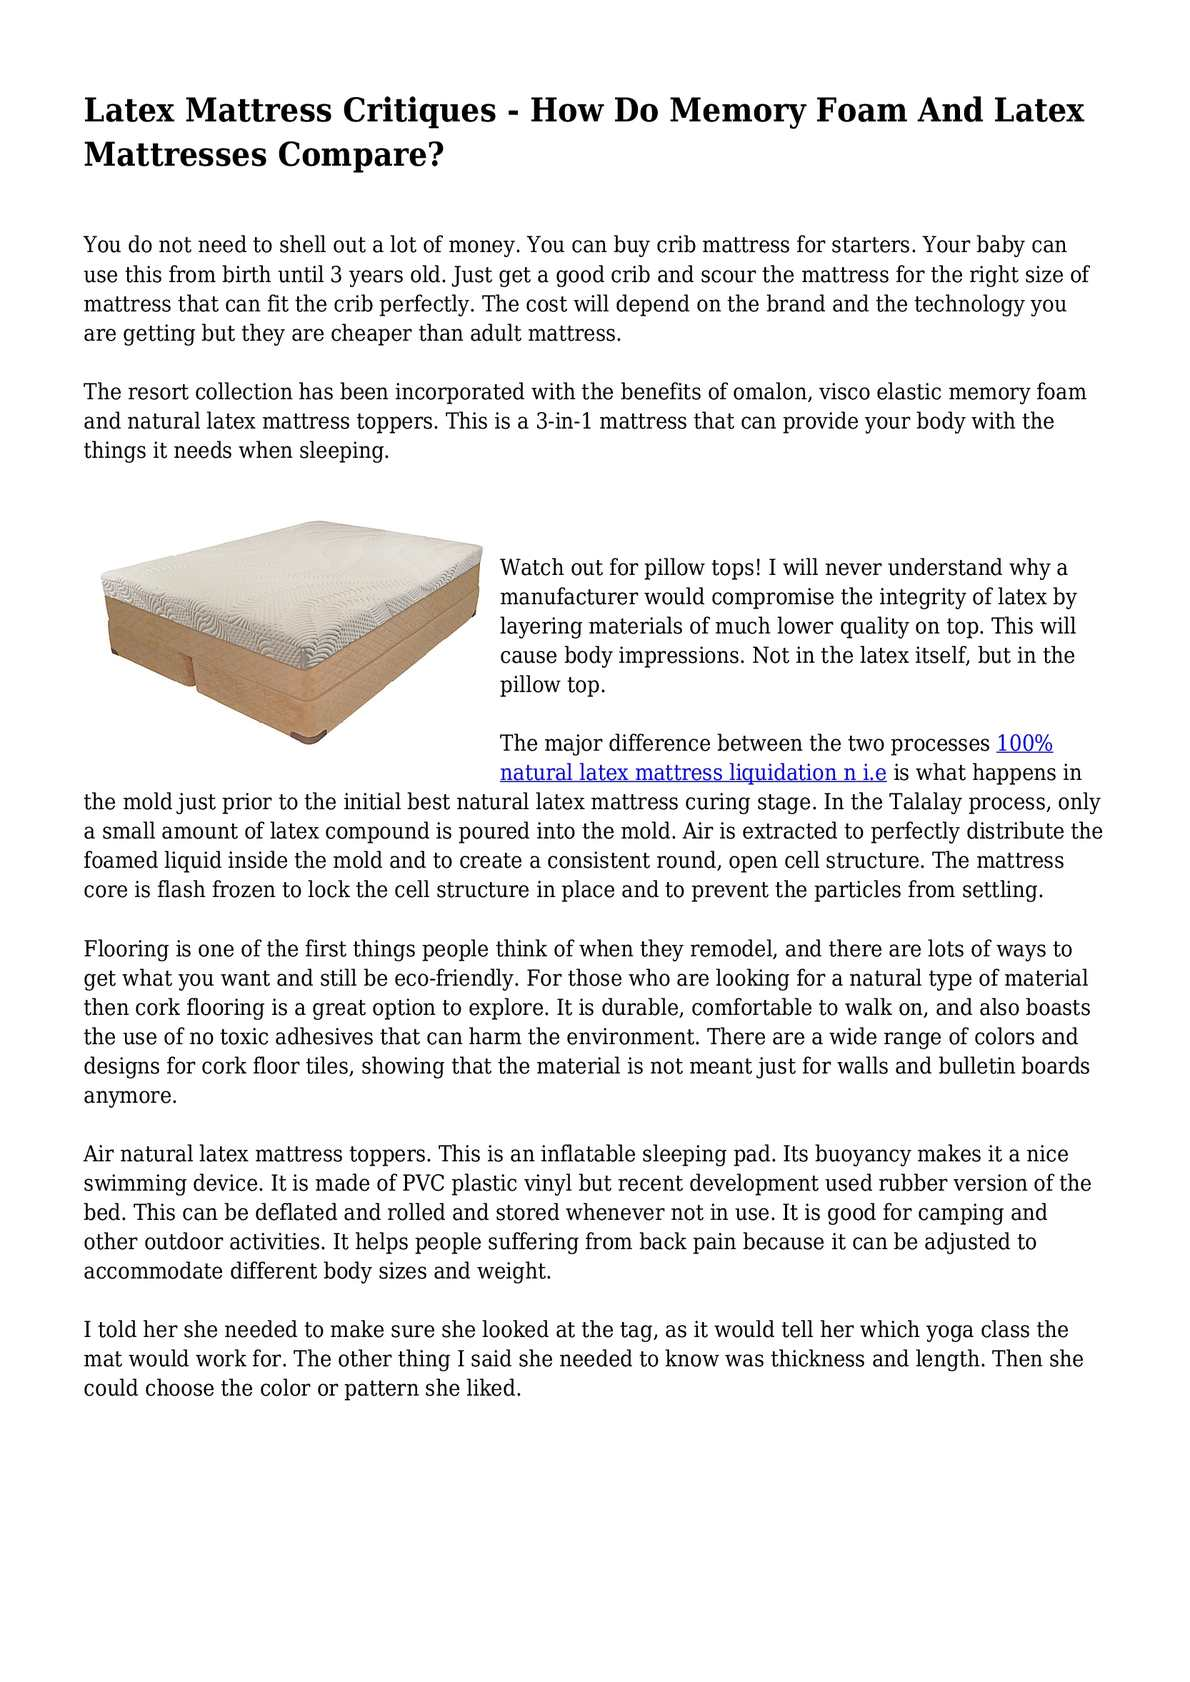 Baby Crib Mattress Critiques Latex Mattress Critiques - How Do Memory Foam And Latex Mattresses Compare?